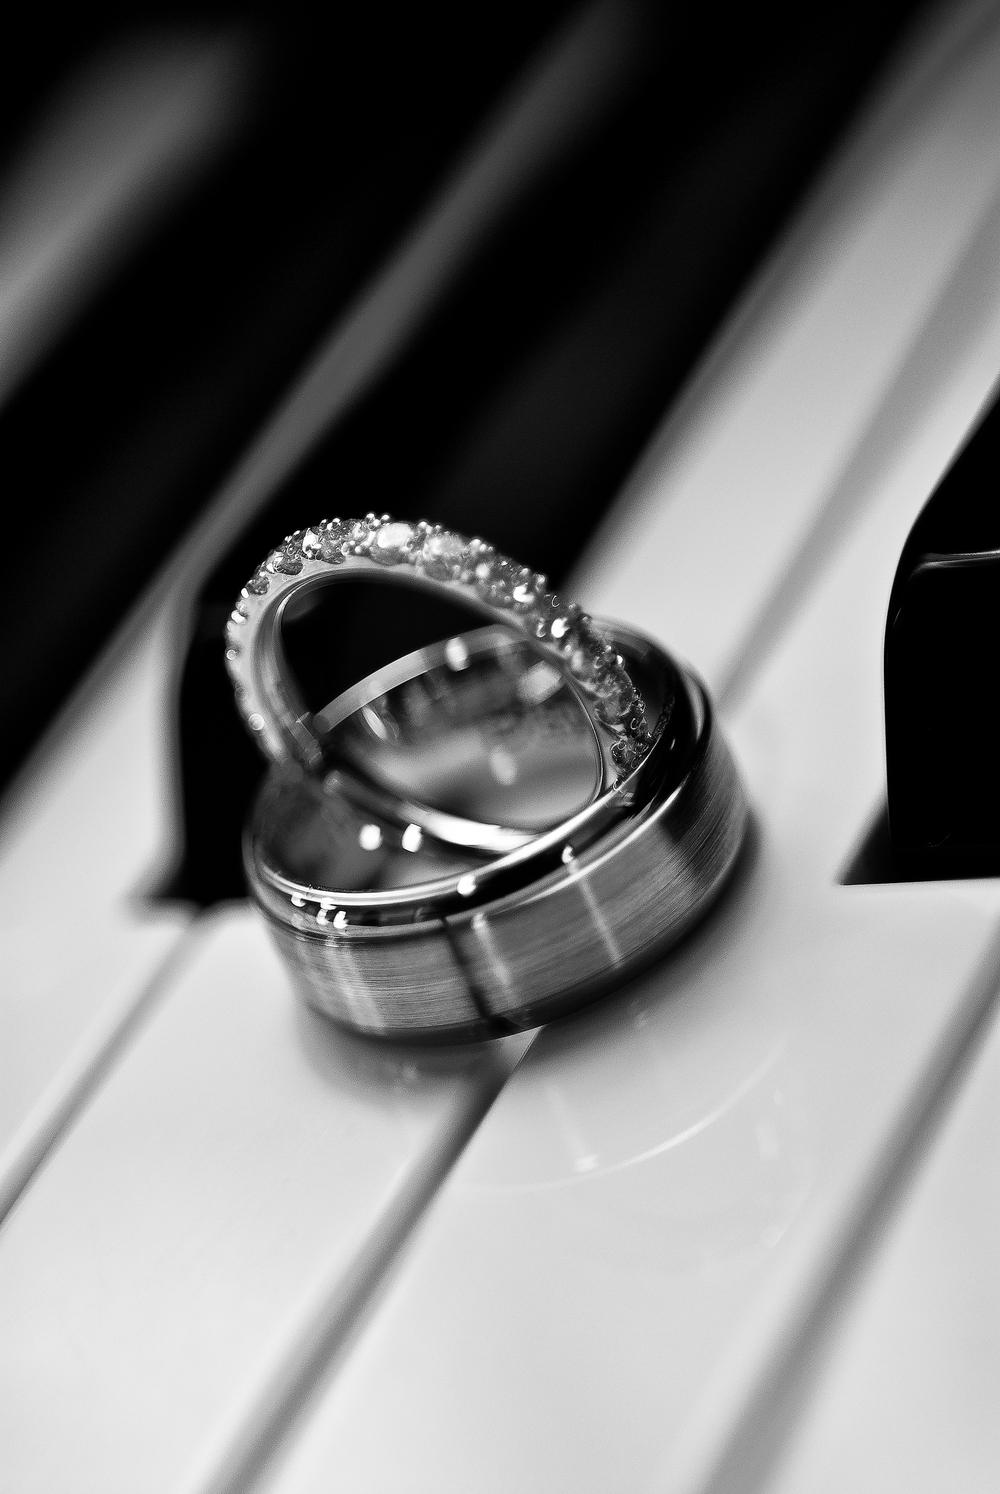 Wedding Rings on Piano at a Wedding